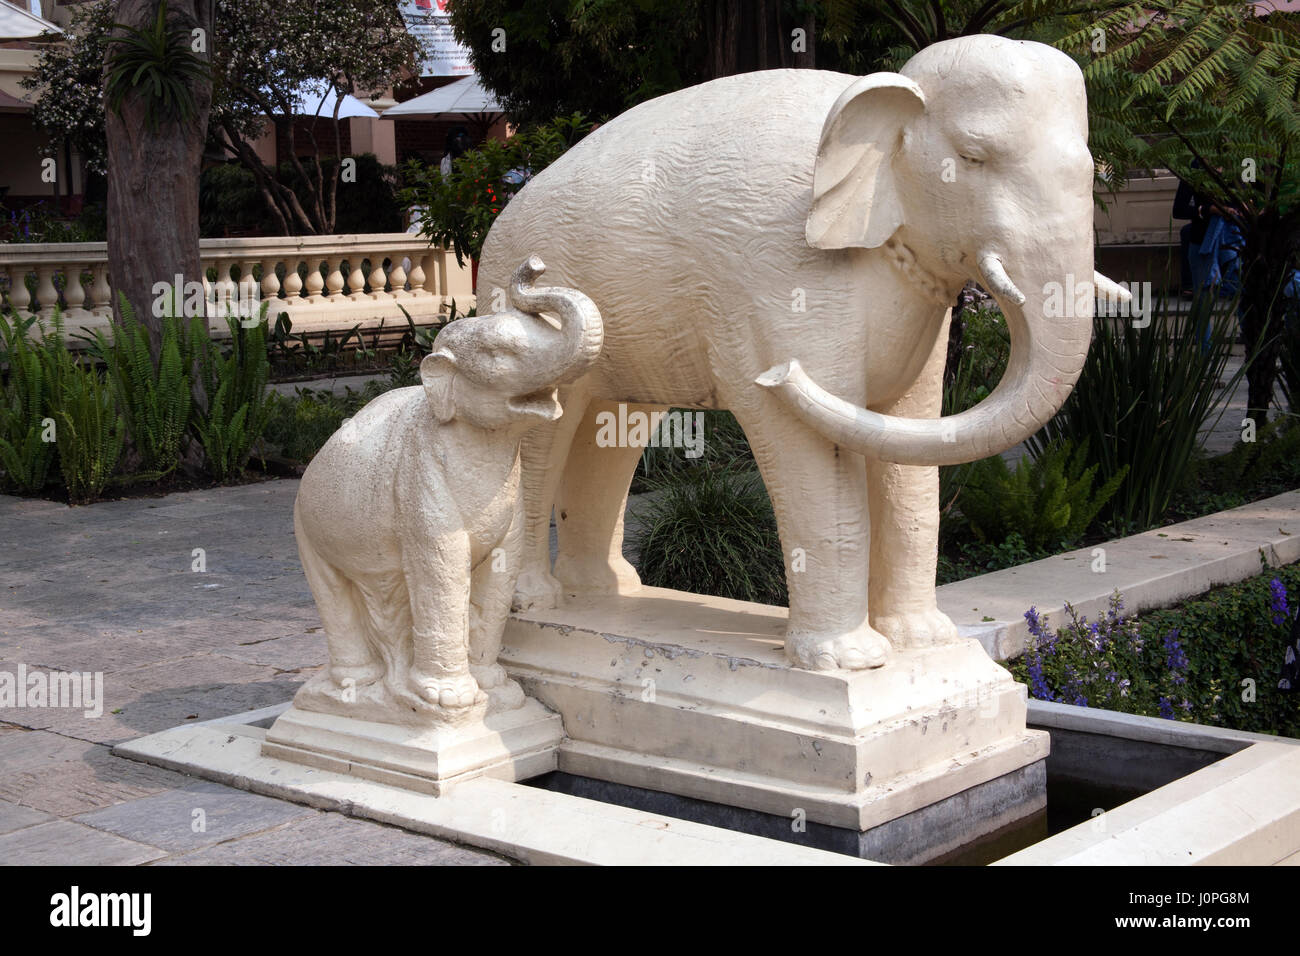 Mother And Baby Elephant Statue In The Garden Of Dreams, Kaiser Mahal,  Thamel,